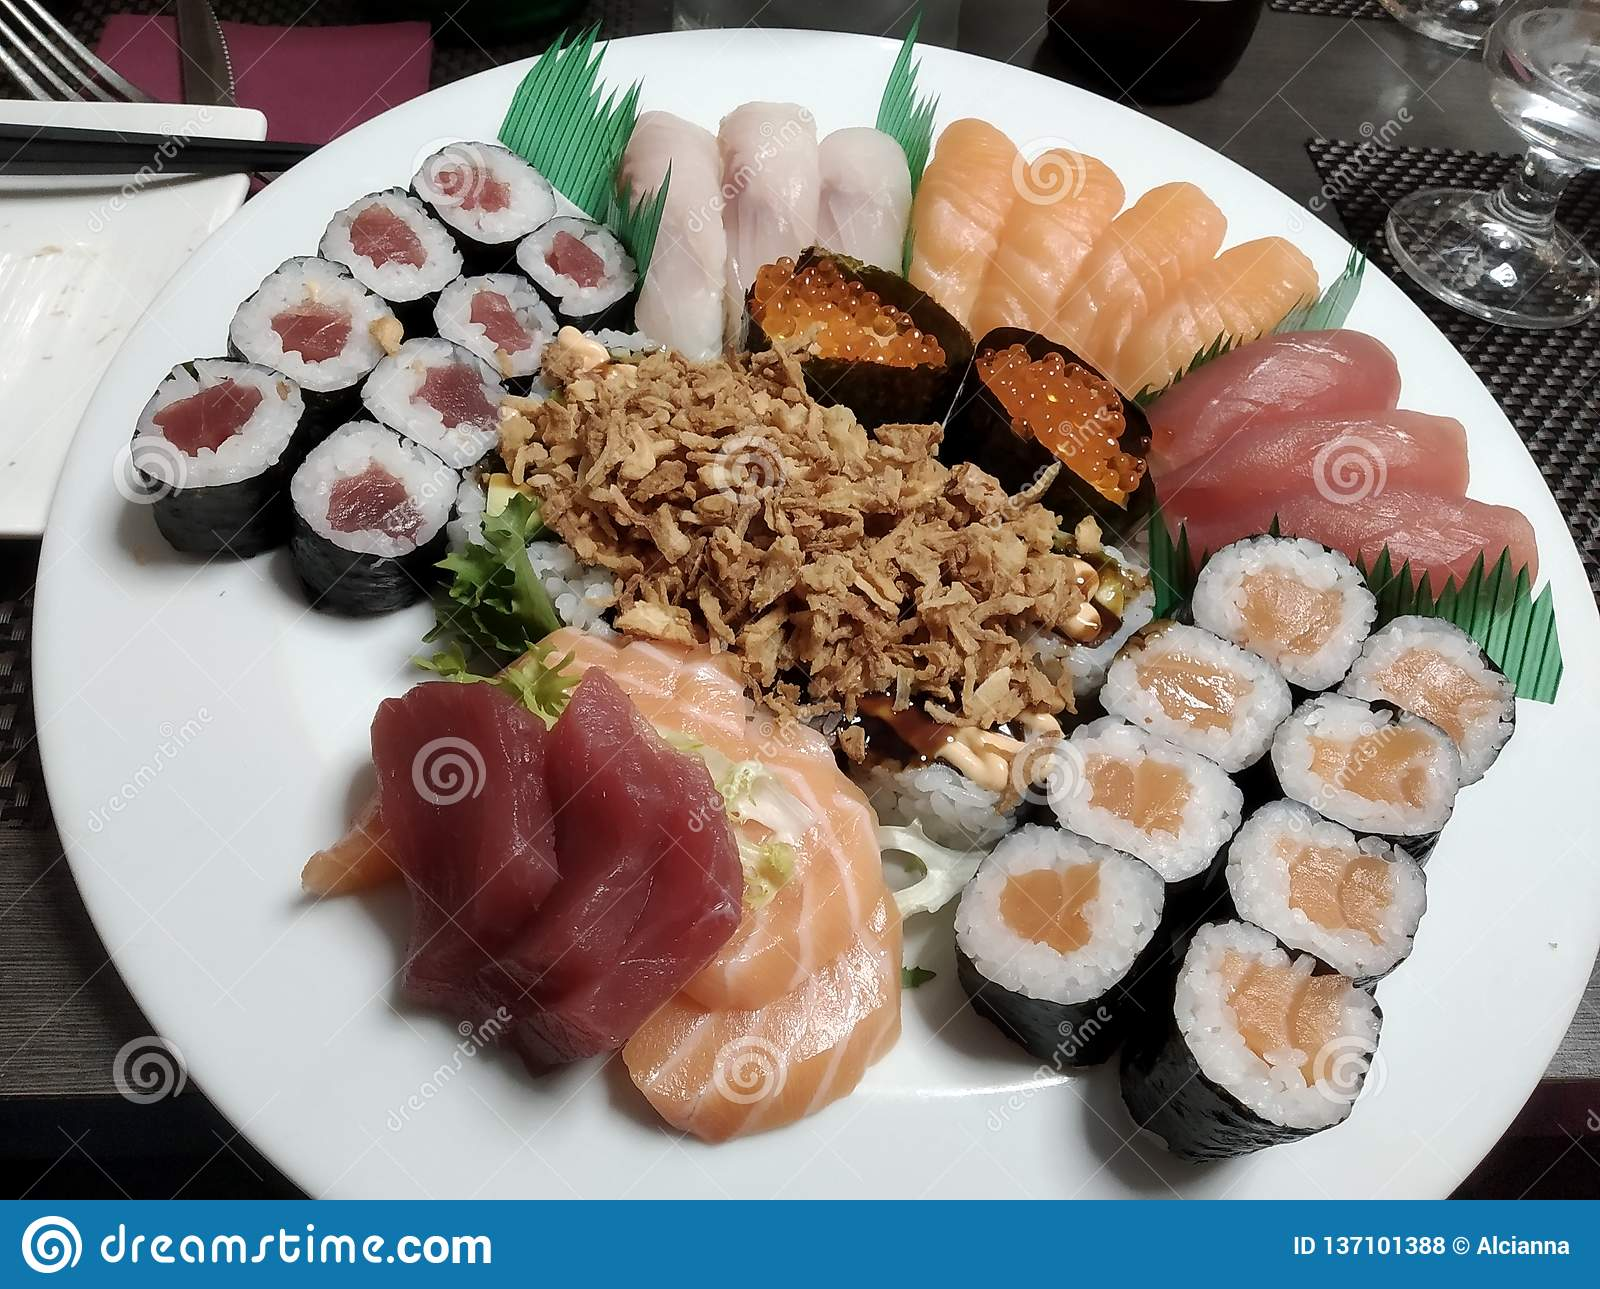 Mixed Sushi Boat At Japanese Restaurant Stock Photo Image Of Food Coffee 137101388 At sushi boat japanese restaurant we offer meals of excellent quality and invite you to try our delicious food. dreamstime com